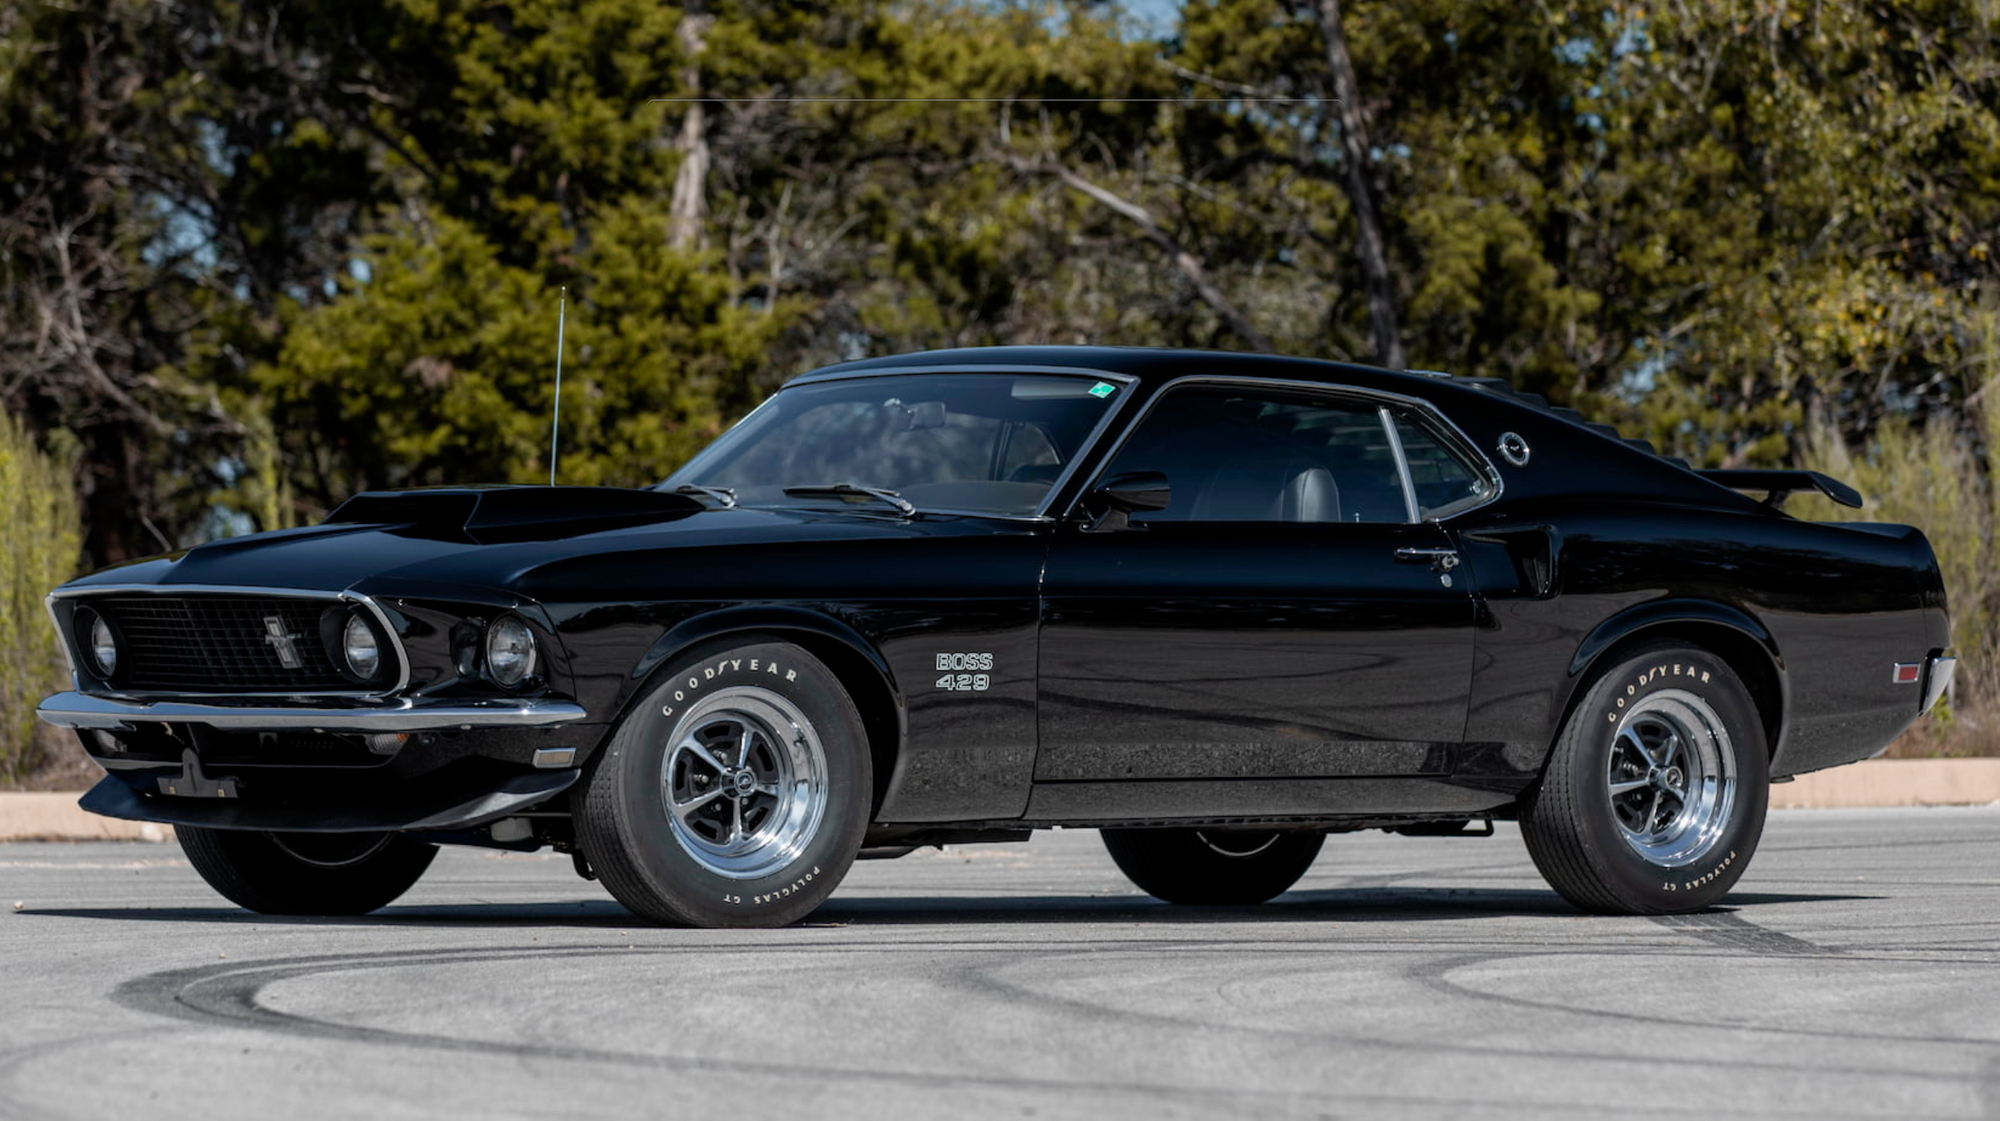 1969 Ford Mustang Boss 429 Owned By Paul Walker Heading To Mecum In 2020 Ford Mustang Boss Mustang Boss Ford Mustang